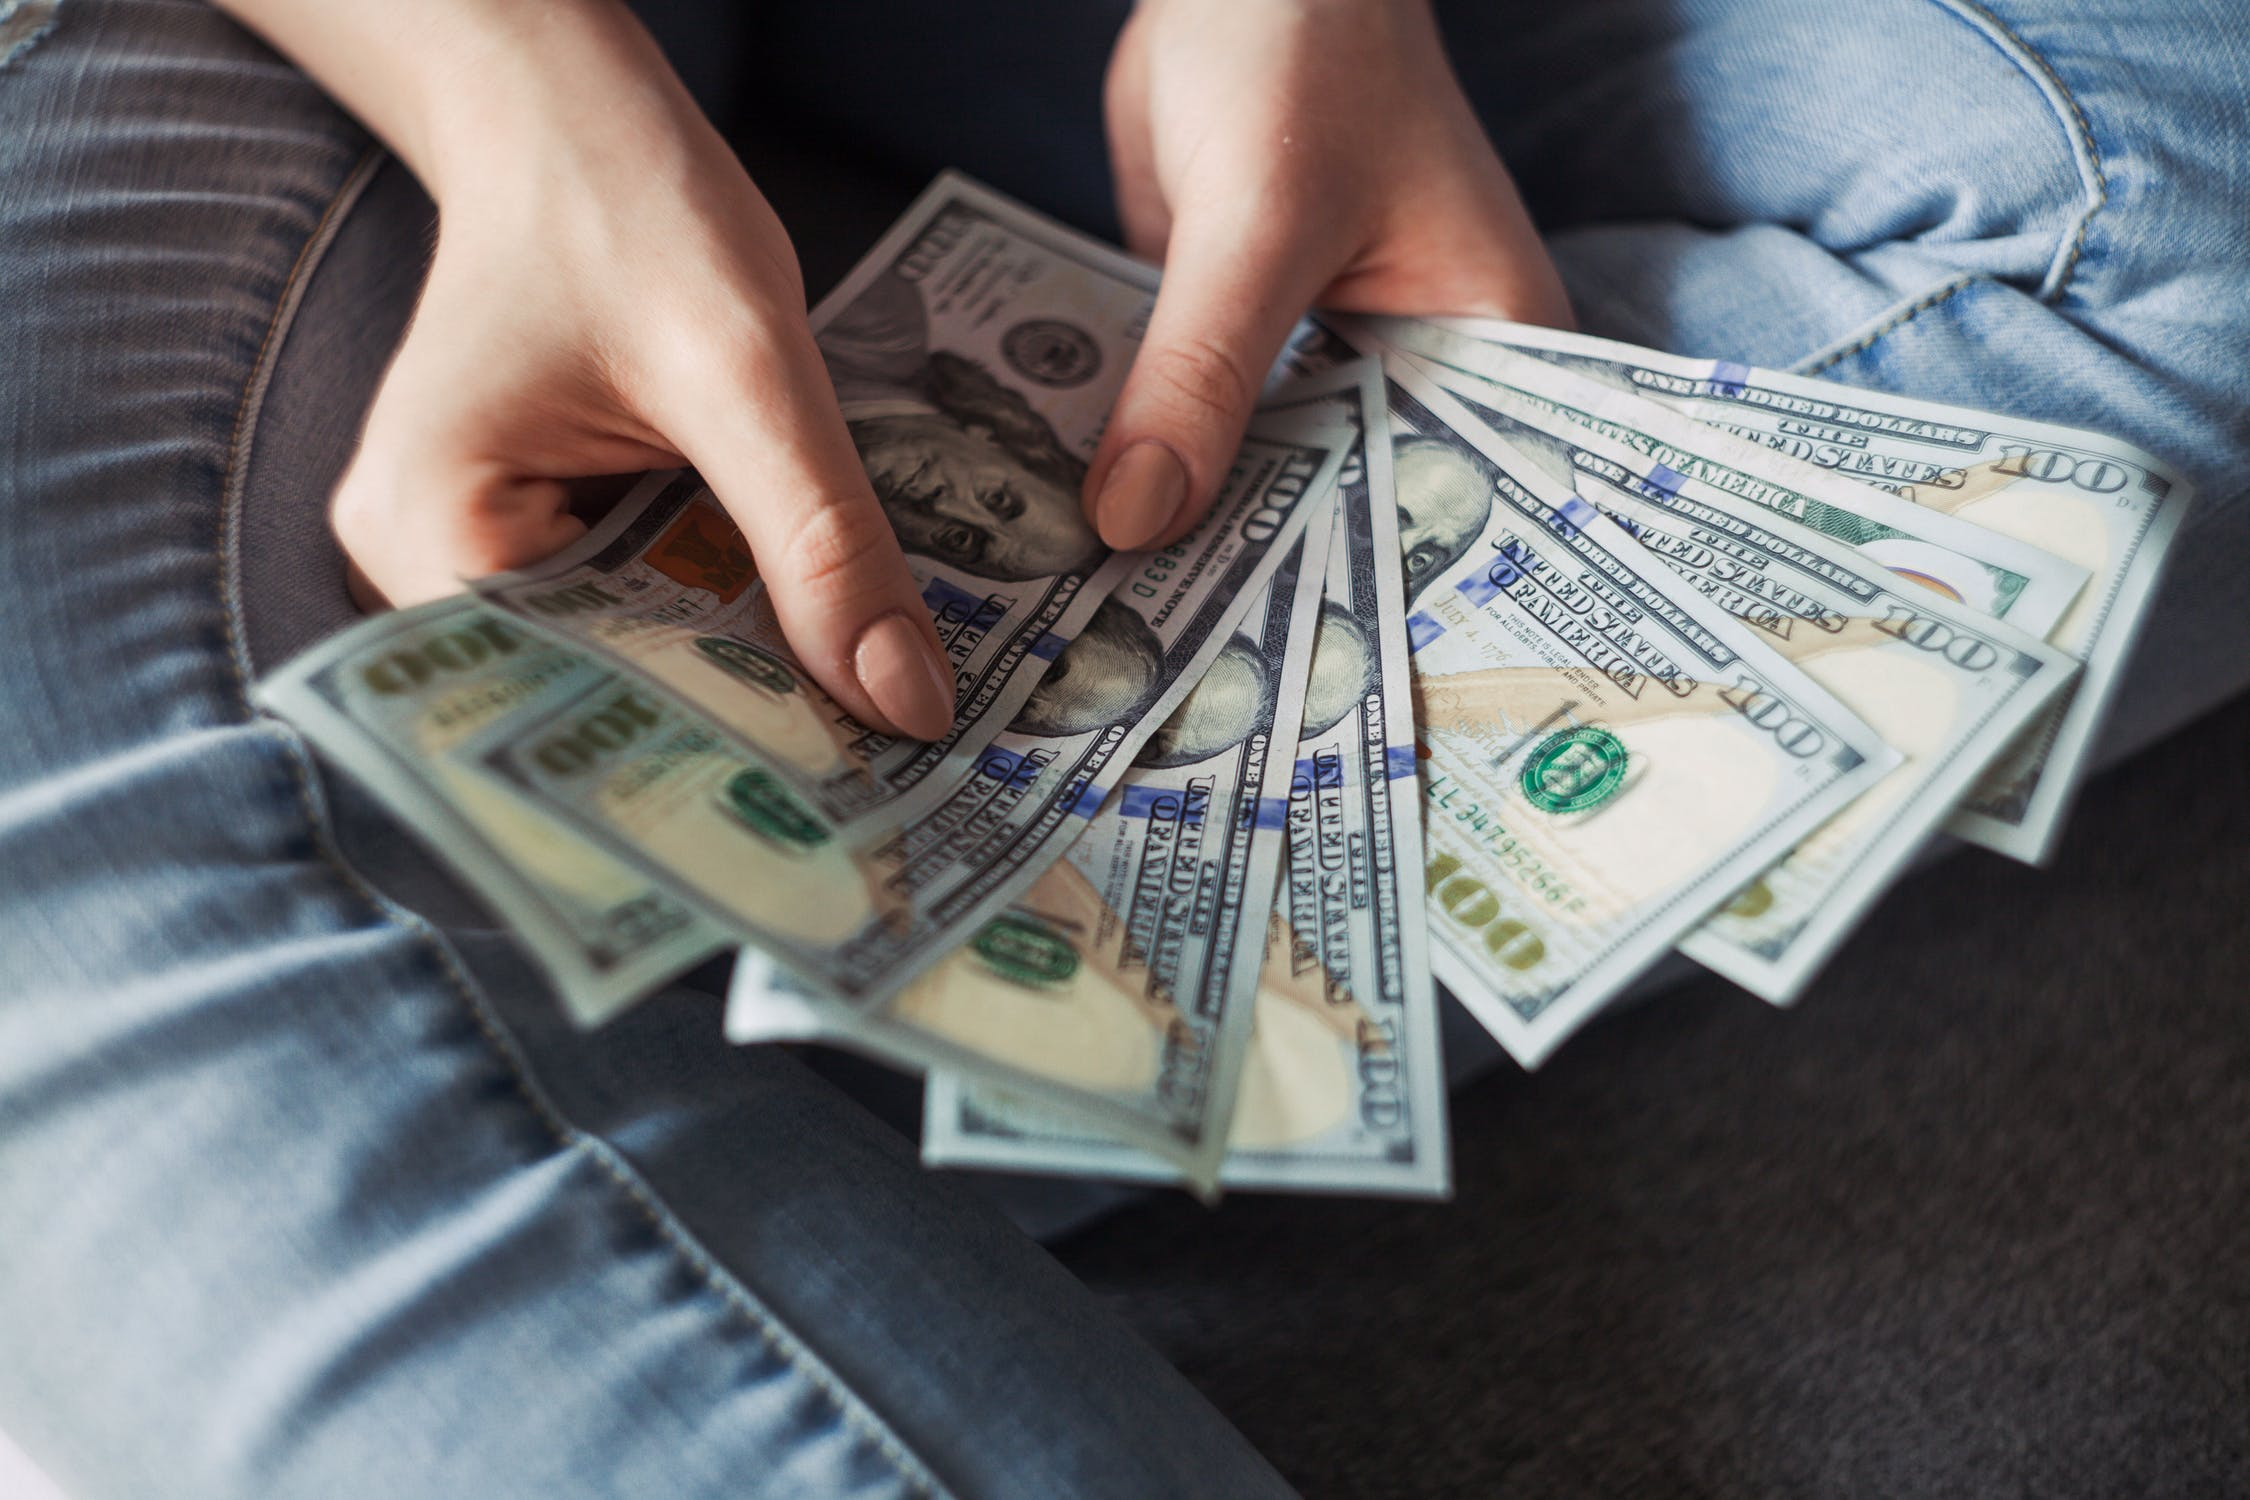 The advantages and disadvantages of peer to peer lending